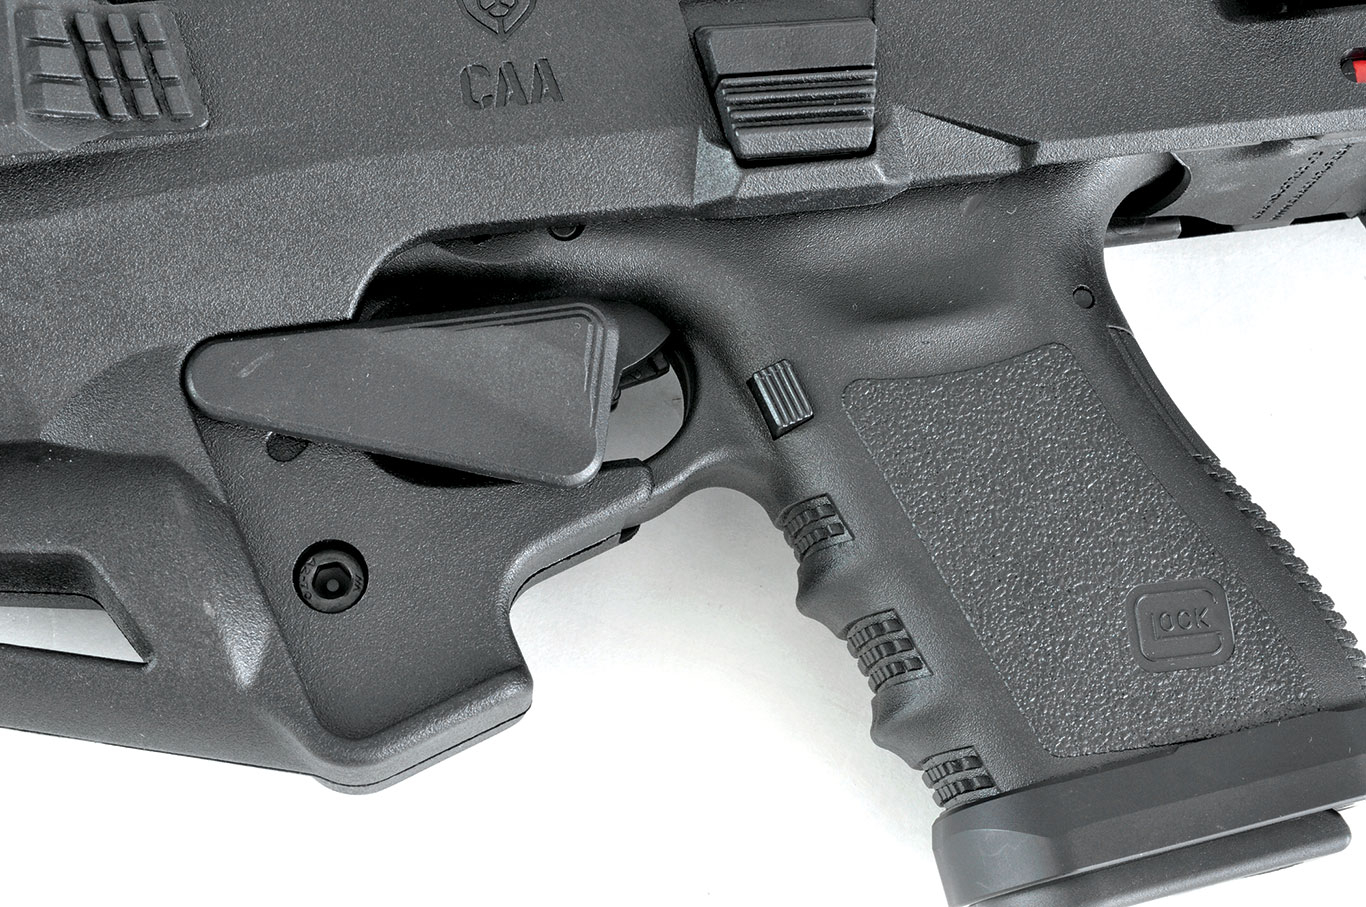 Micro RONI Stabilizer with Glock inserted, showing the manual safety lever up and blocking access to the trigger guard.